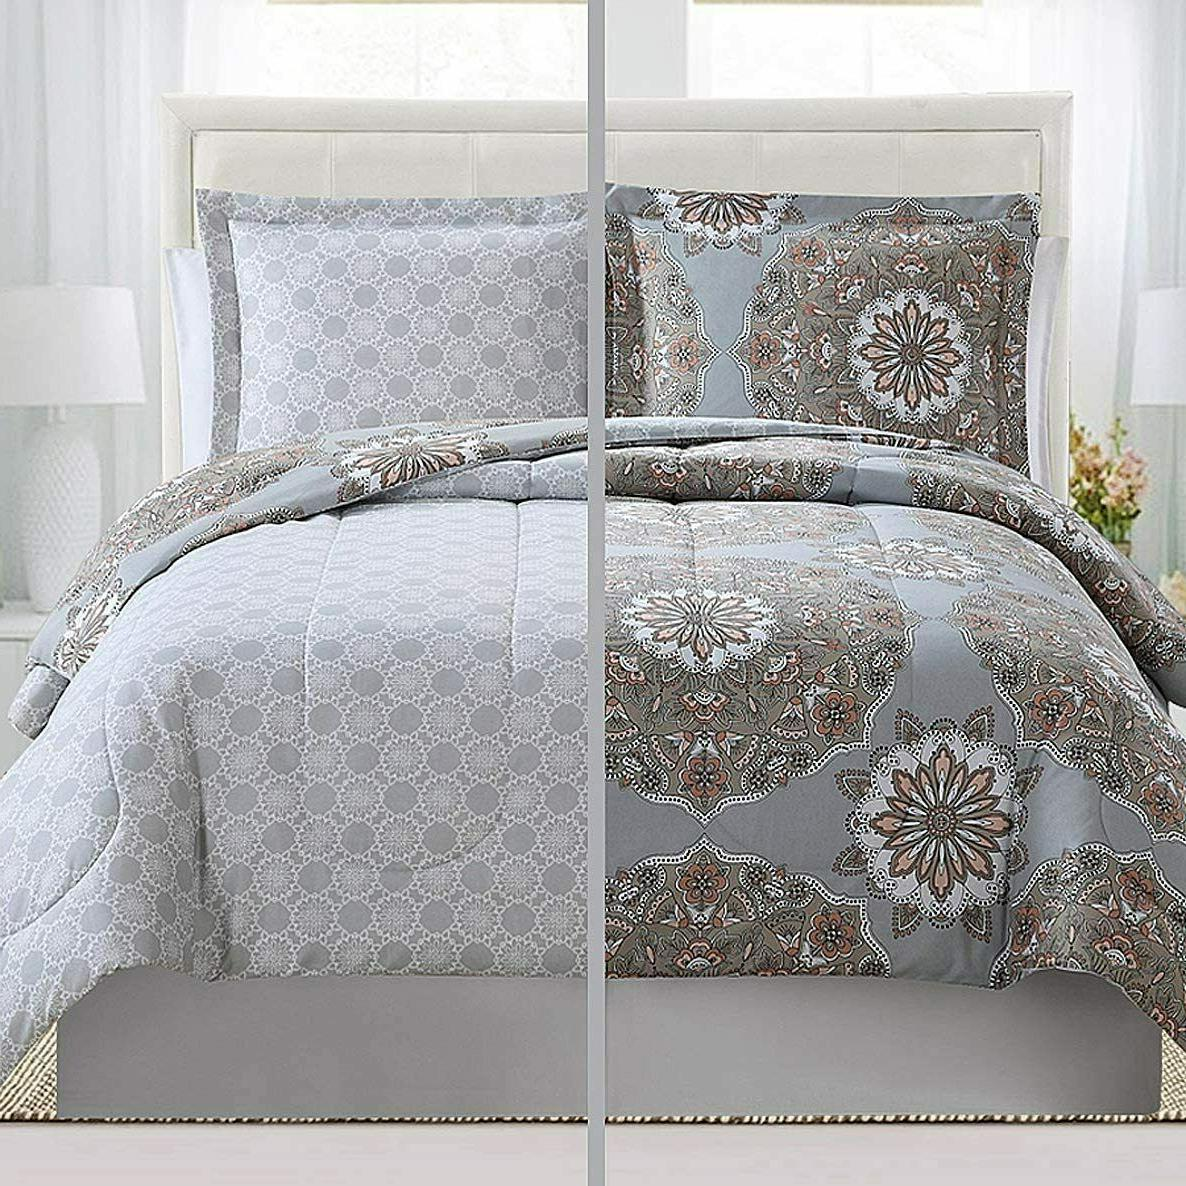 Duvet Cover Set 1800 Bedding Egyptian Quality Ultra Soft 3 P